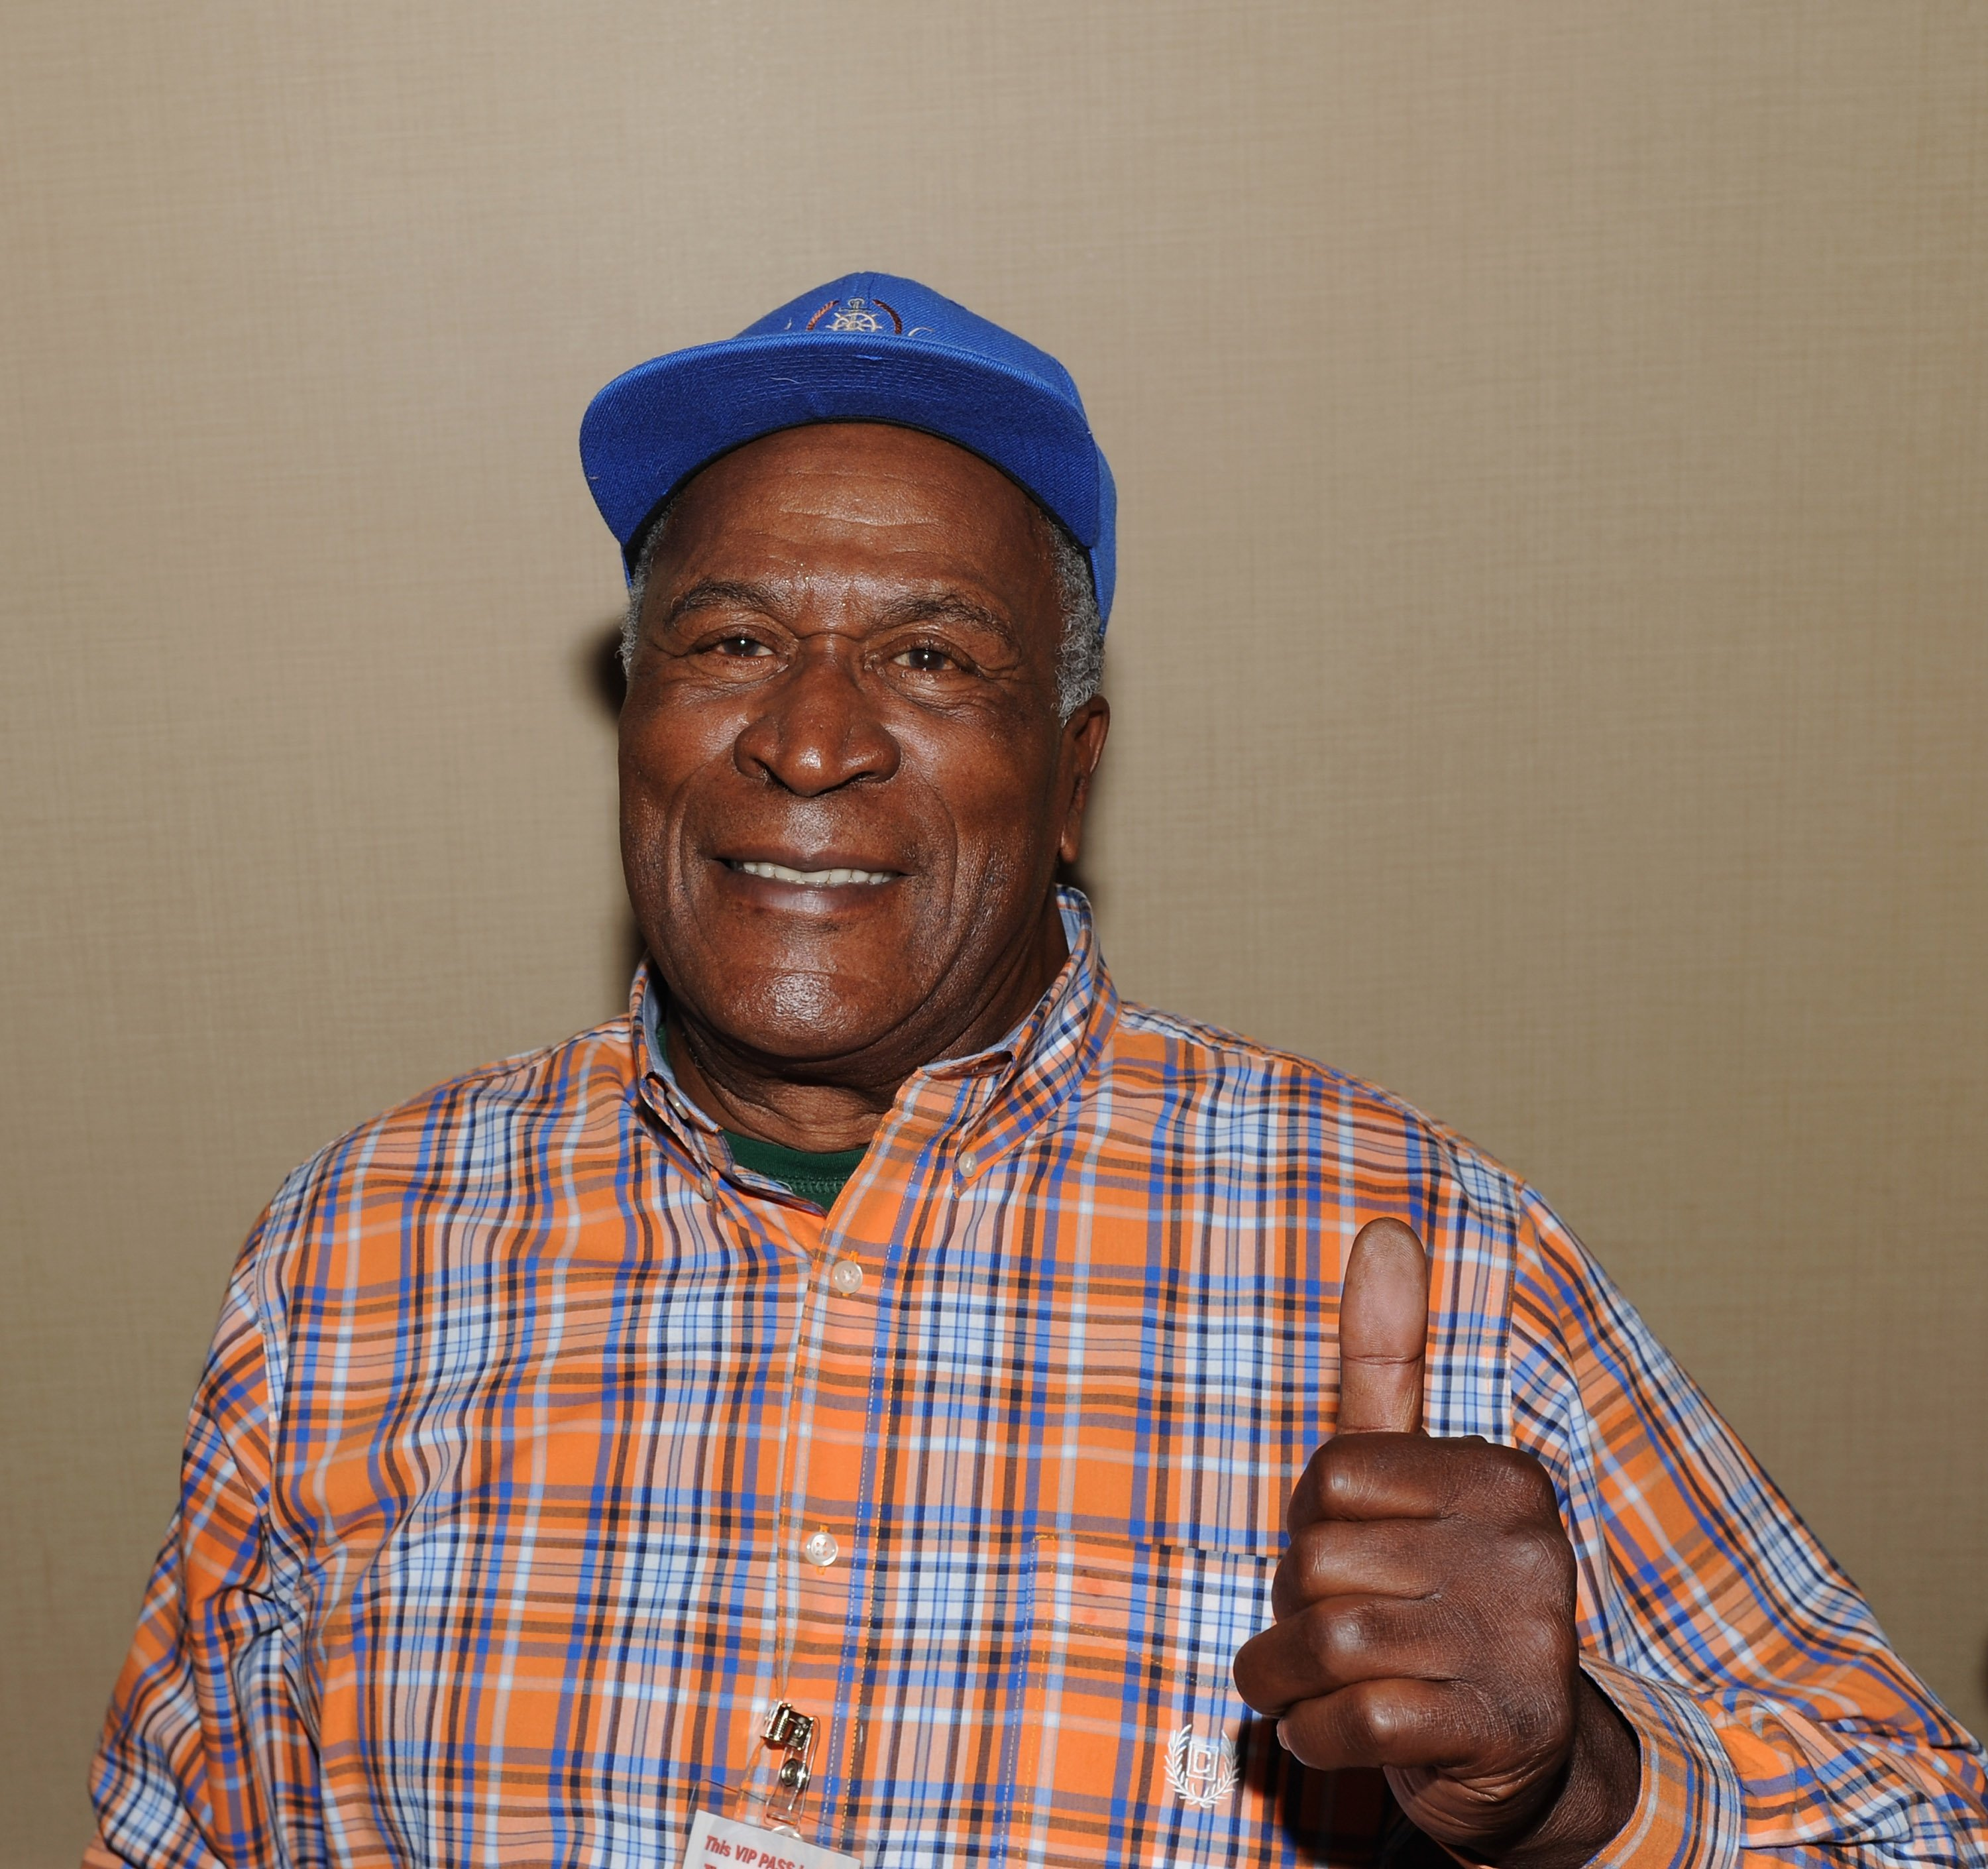 John Amos attending Day 1 the Chiller Theatre Expo at Sheraton Parsippany Hotel in Parsippany, New Jersey in October 2015. I Image: Getty Images.